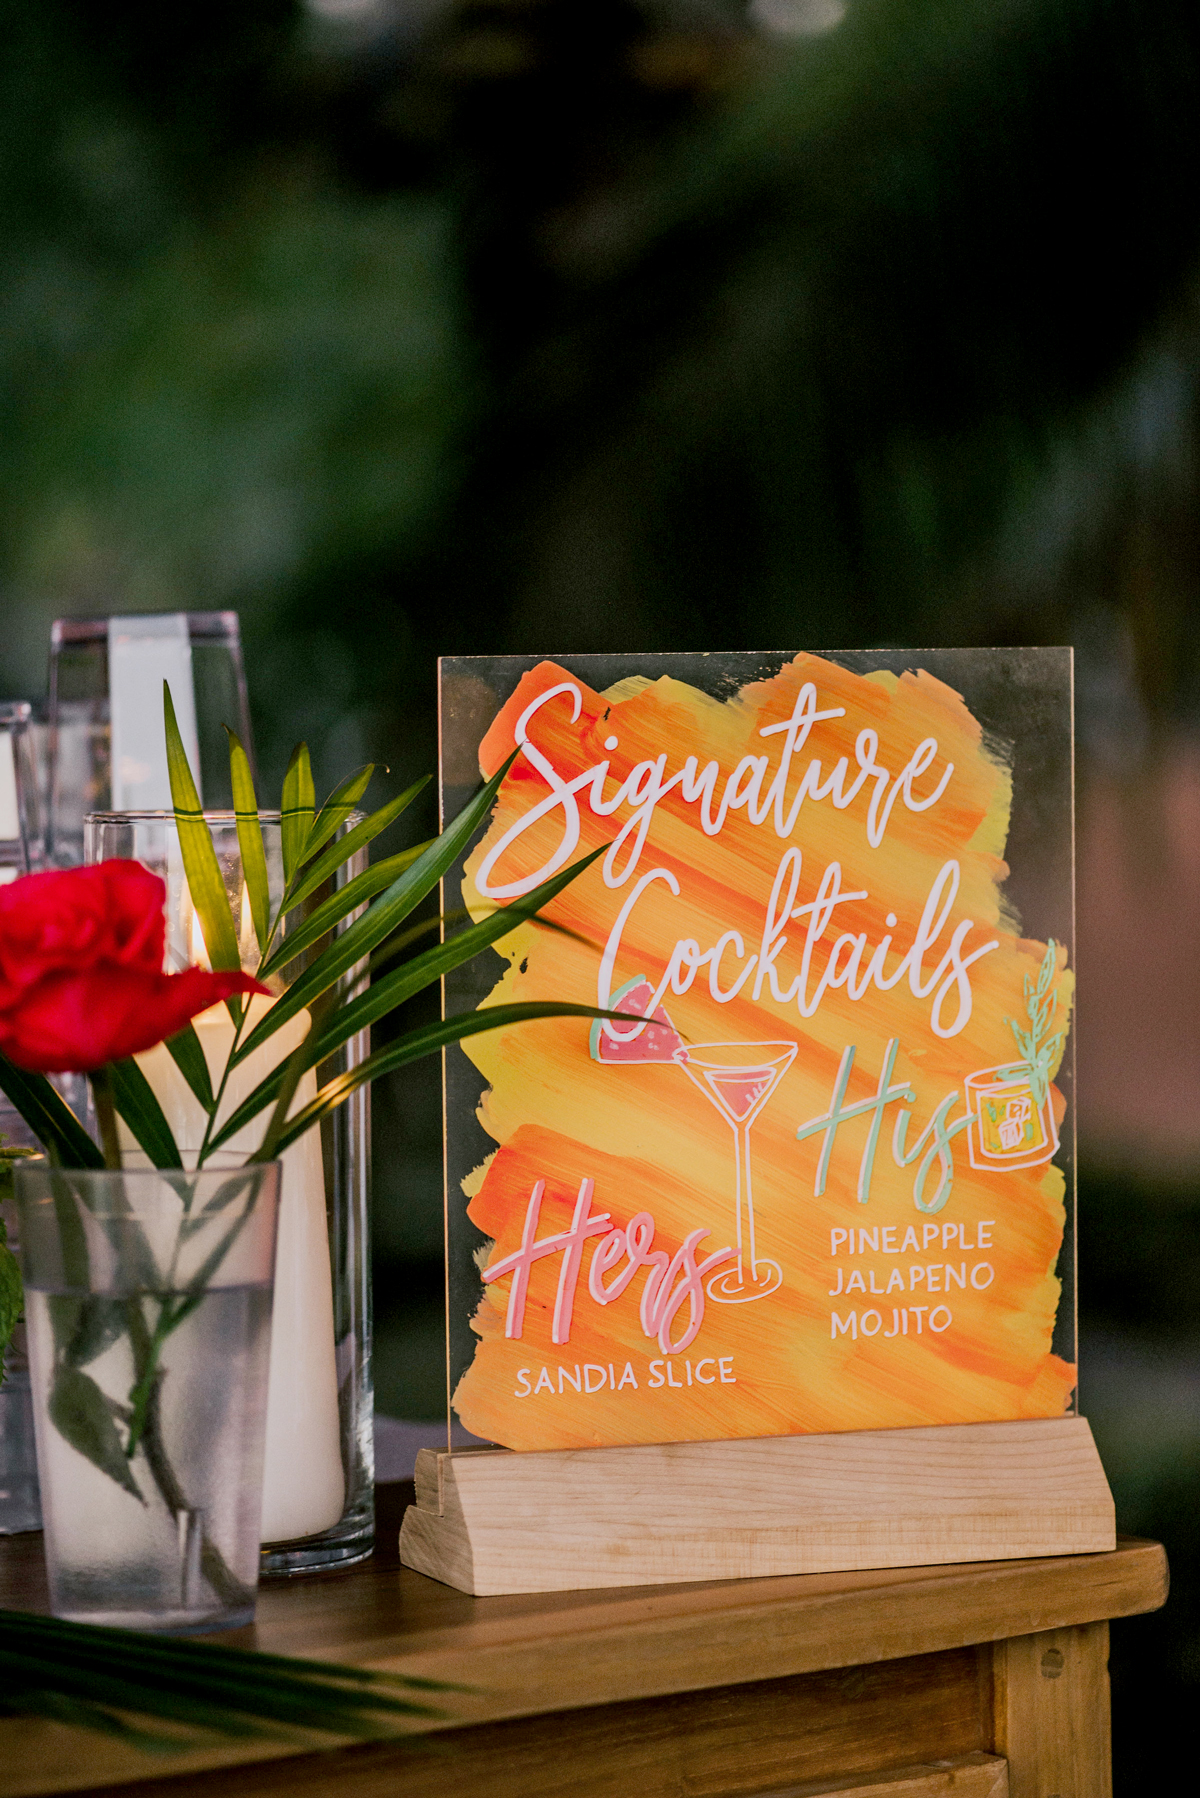 orange painted glass signature cocktail sign on wooden table